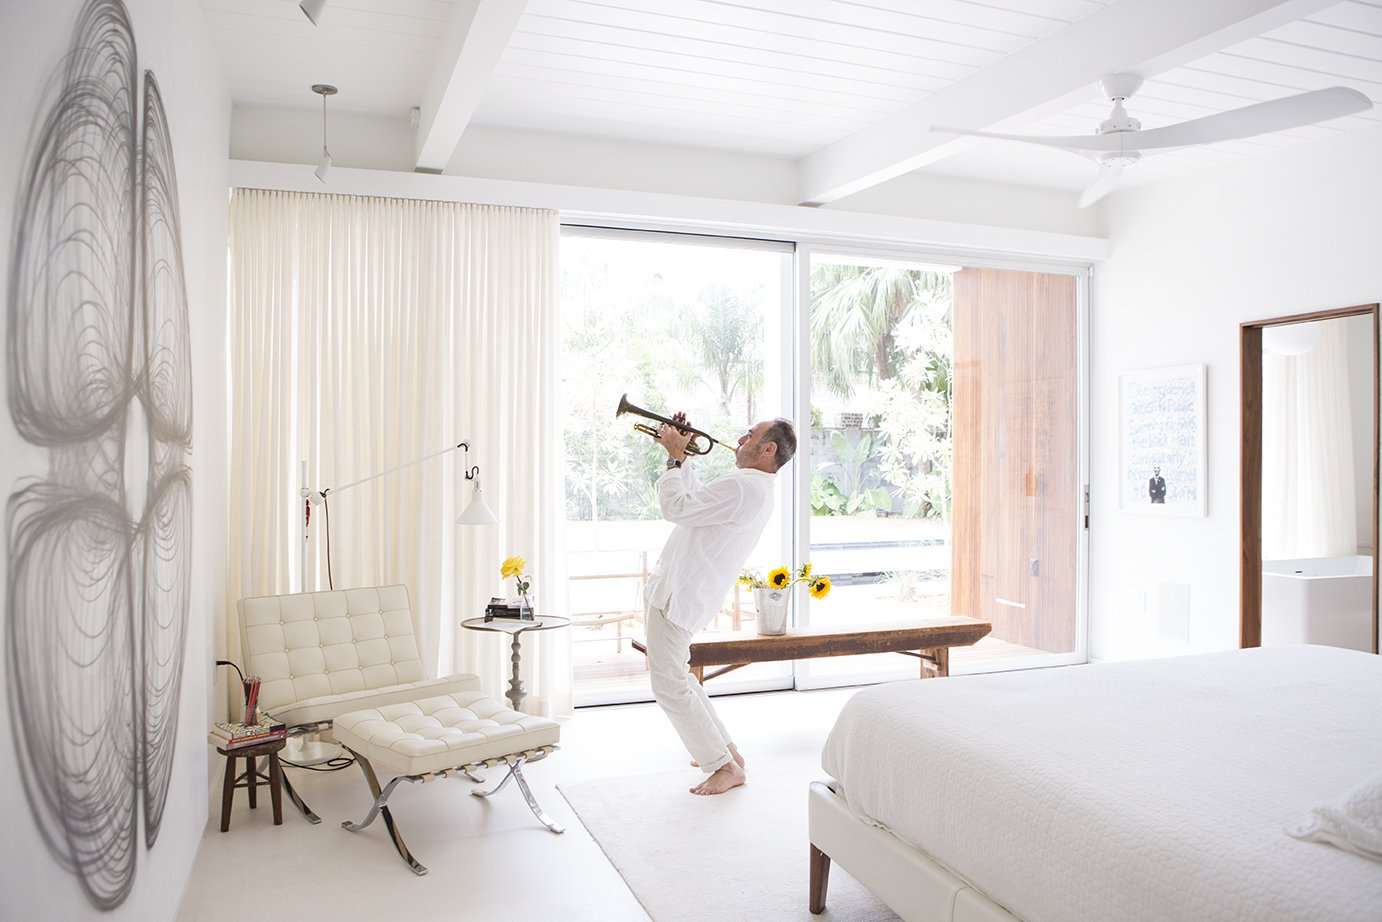 Bedroom Custom curtains by Katie Koch Home offer privacy in the master suite, where Ron plays the trumpet. The couple own a mix of new and vintage Mies van der Rohe Barcelona chairs.  Emerald Street Residence from Back to the Garden